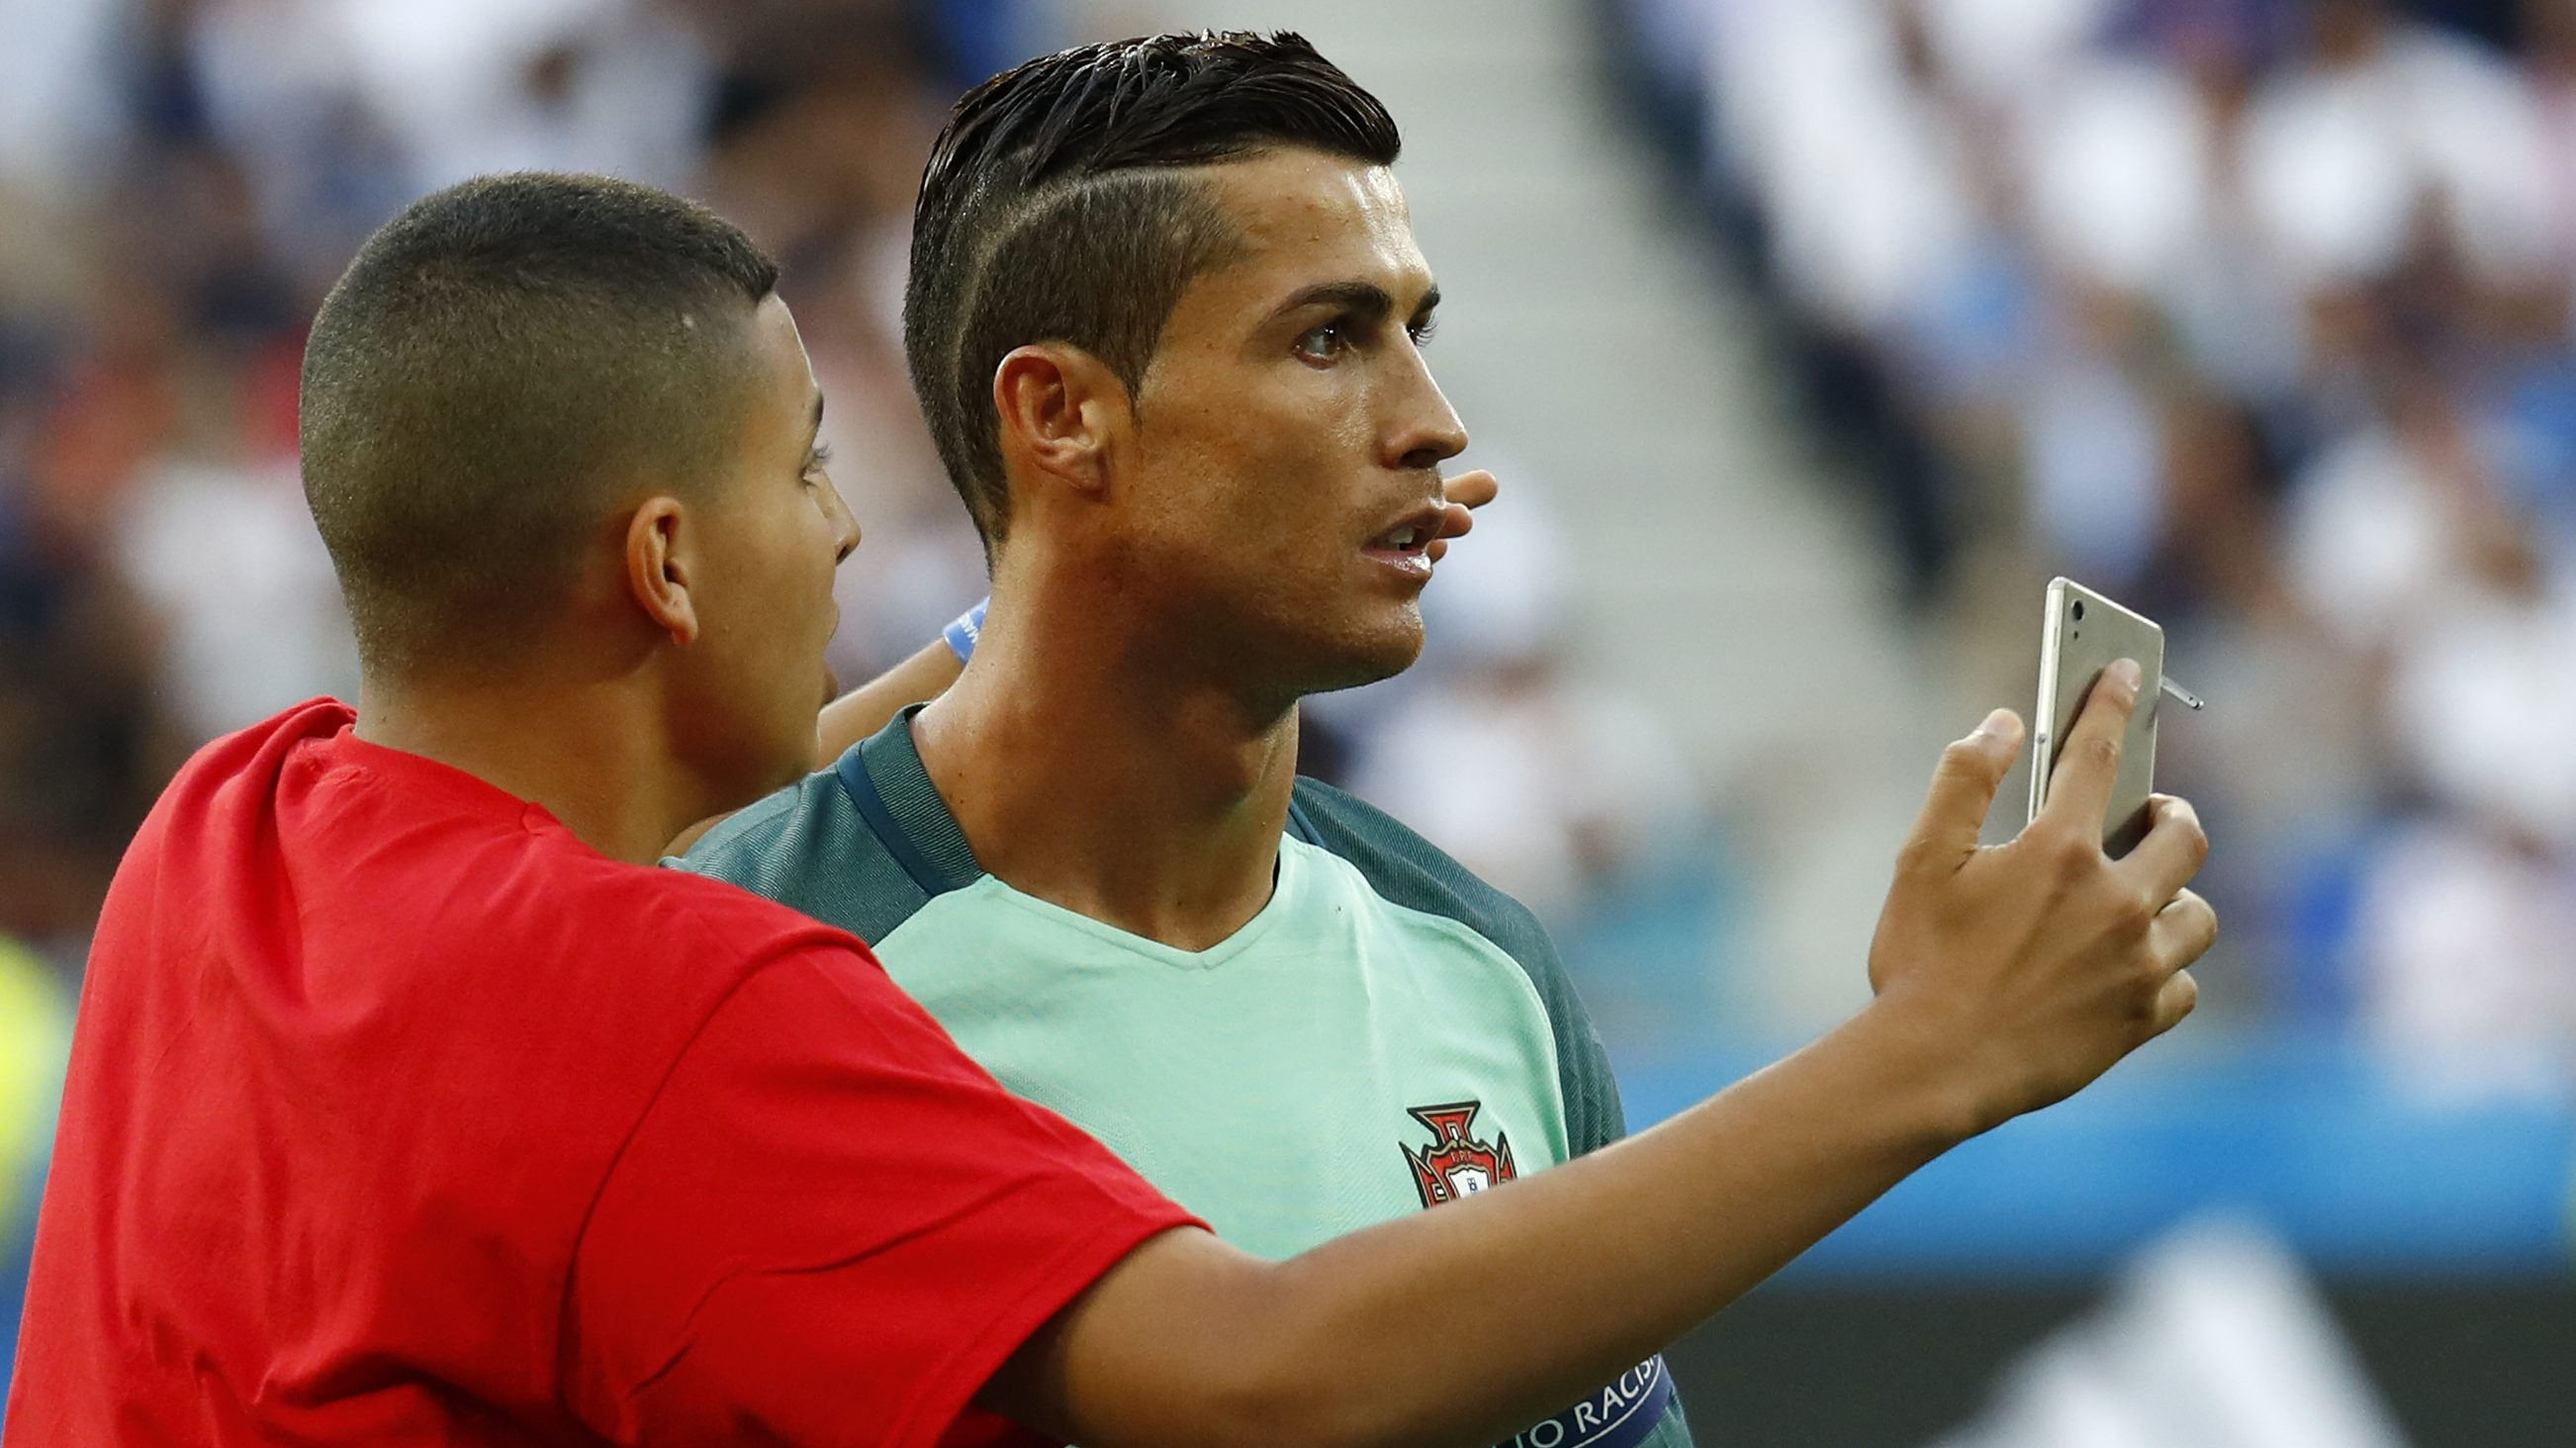 Football Soccer - Portugal v Wales - EURO 2016 - Semi Final - Stade de Lyon, Lyon, France - 6/7/16 Fan invades the pitch and attempts to take a selfie with Portugal's Cristiano Ronaldo before the game